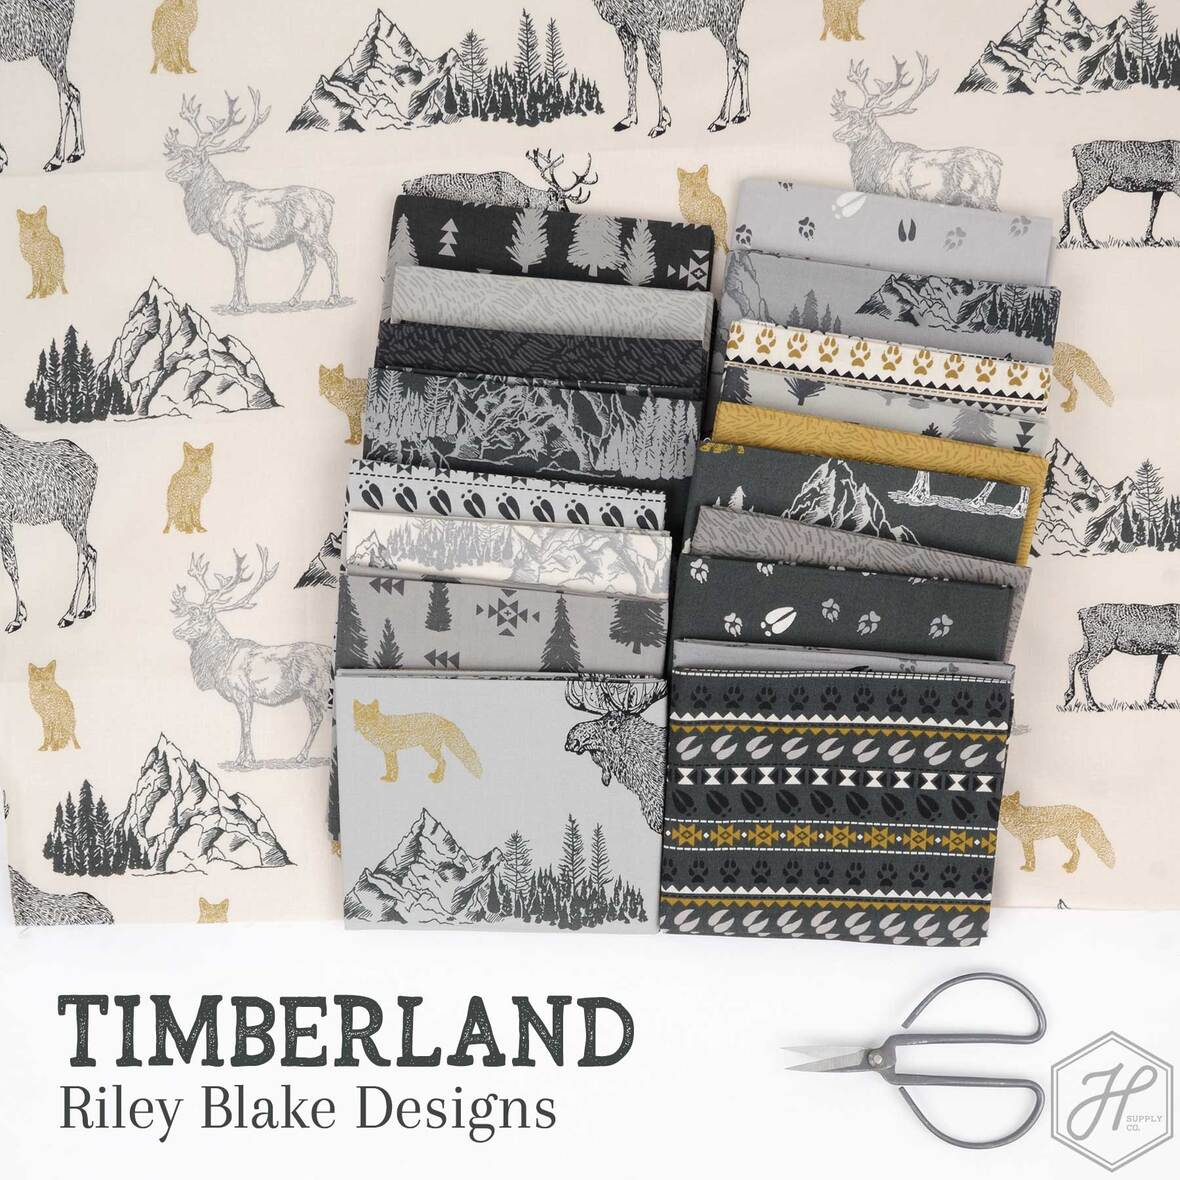 Timberland-Riley-Blake-Designs-at-Hawthrone-Supply-Co